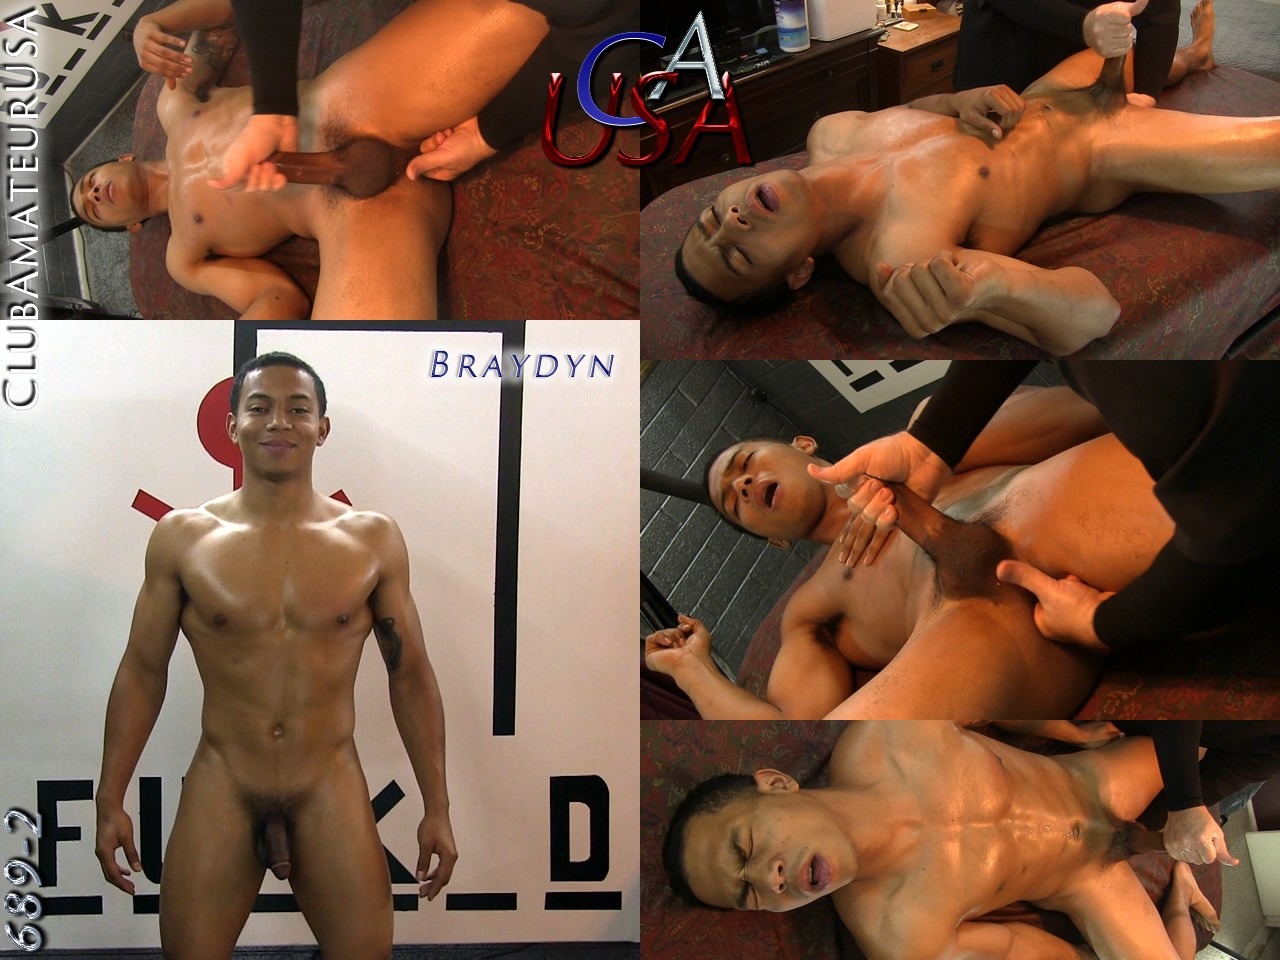 Download or Stream CAUSA 689 Braydyn 2 of 2 - Click Here Now